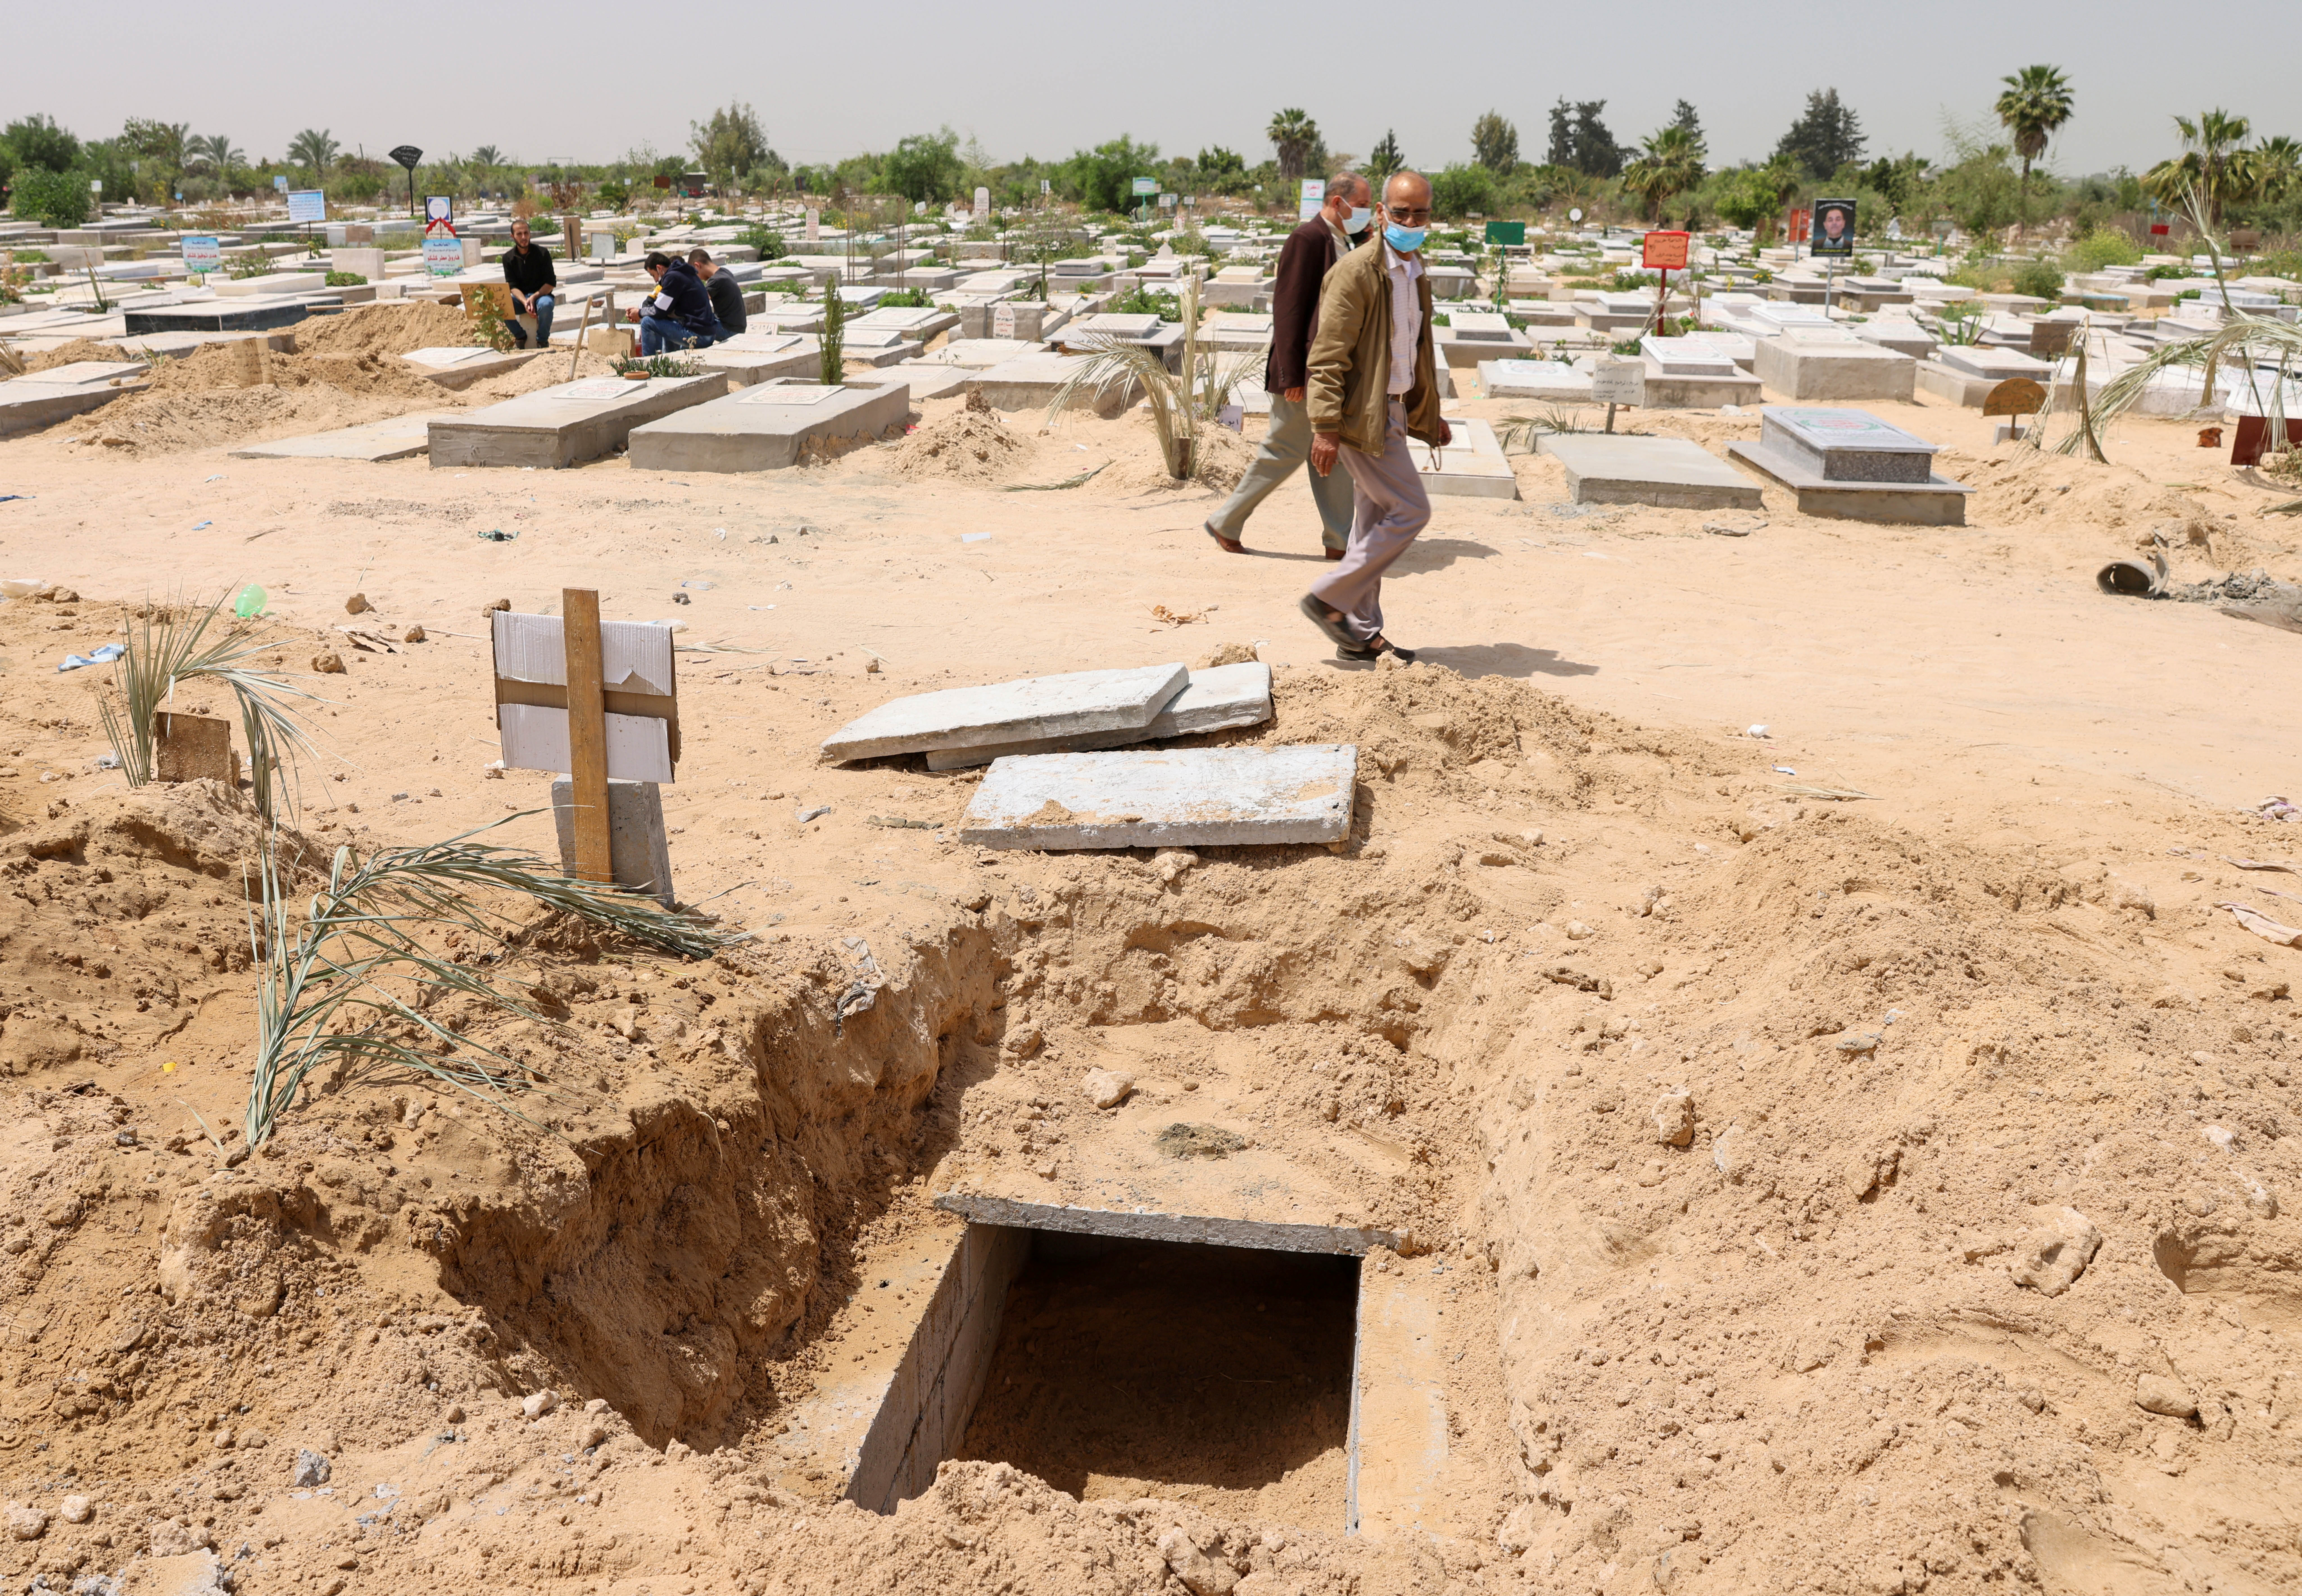 Palestinians walk past a grave dug for a coronavirus disease (COVID-19) victim, at a cemetery, east of Gaza City April 20, 2021. Picture taken April 20, 2021. REUTERS/Mohammed Salem